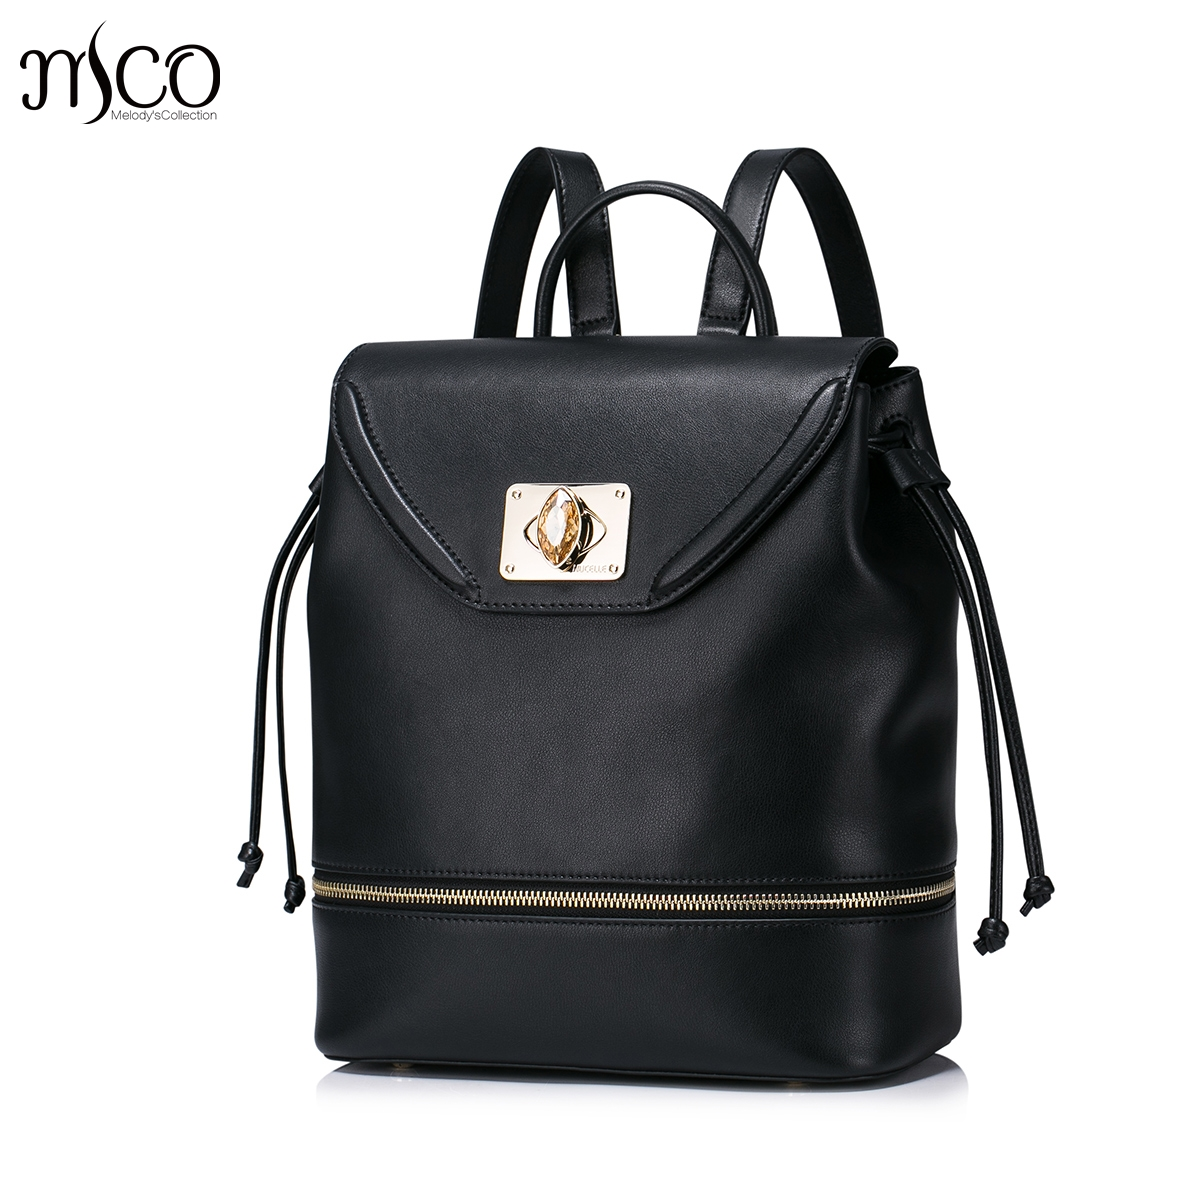 8e264c4fc6 Women s Zip Split Leather Backpack Female Diamond Lock Daily Shoulder  Drawstring Bags Ladies Travel bags Daypack For Girls on Aliexpress.com